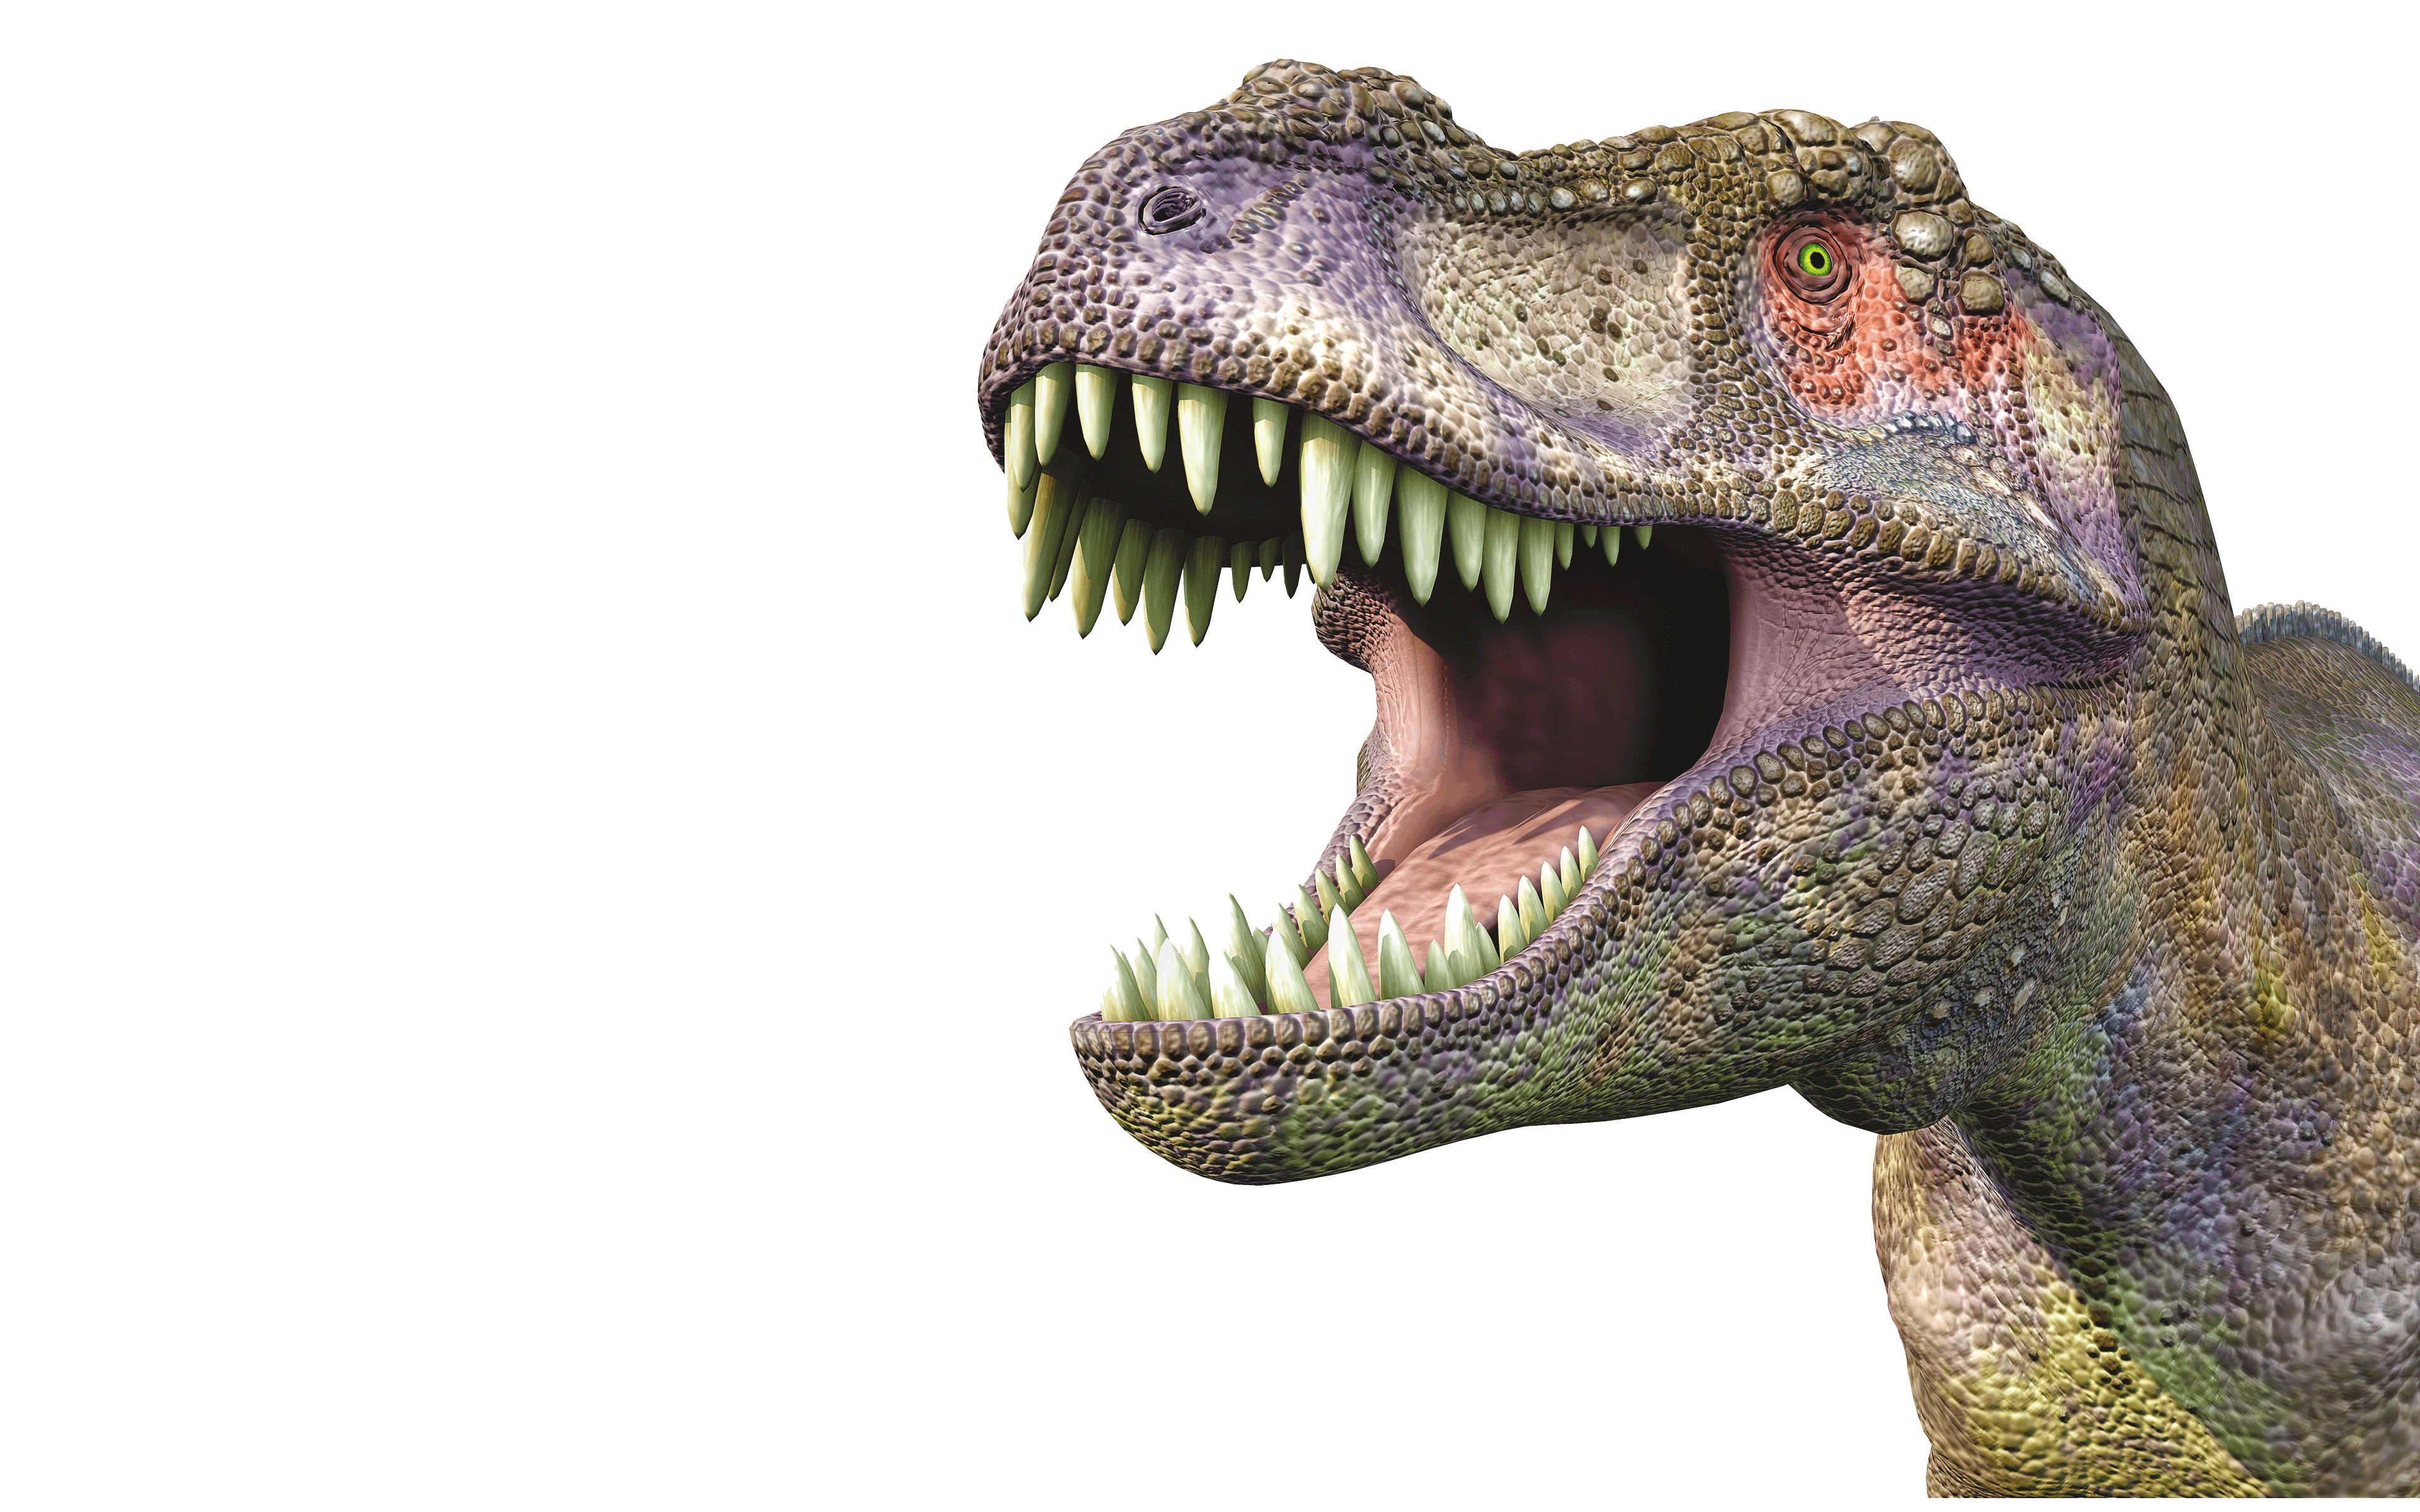 Cars Wallpapers For Pc Free Download Tyrannosaurus Huge Head 62567 Wallpapers13 Com